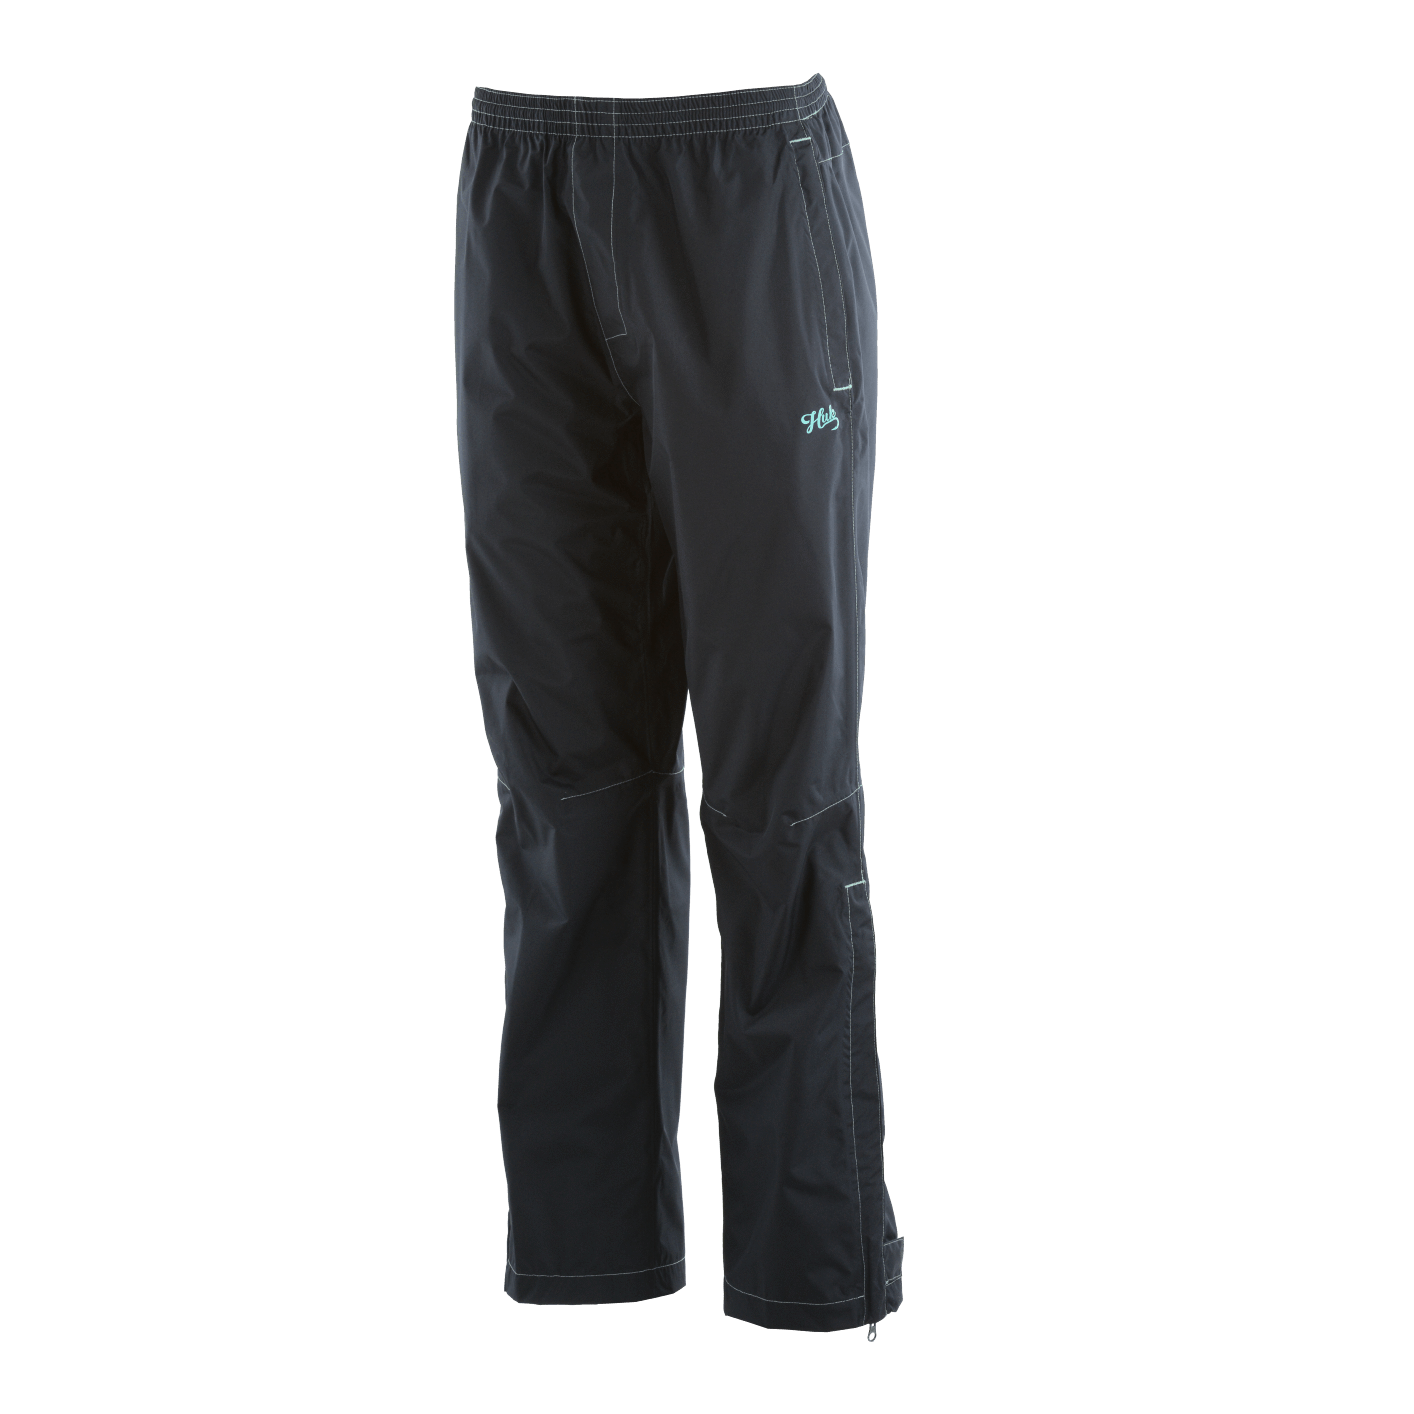 Huk Womens Packable Pant